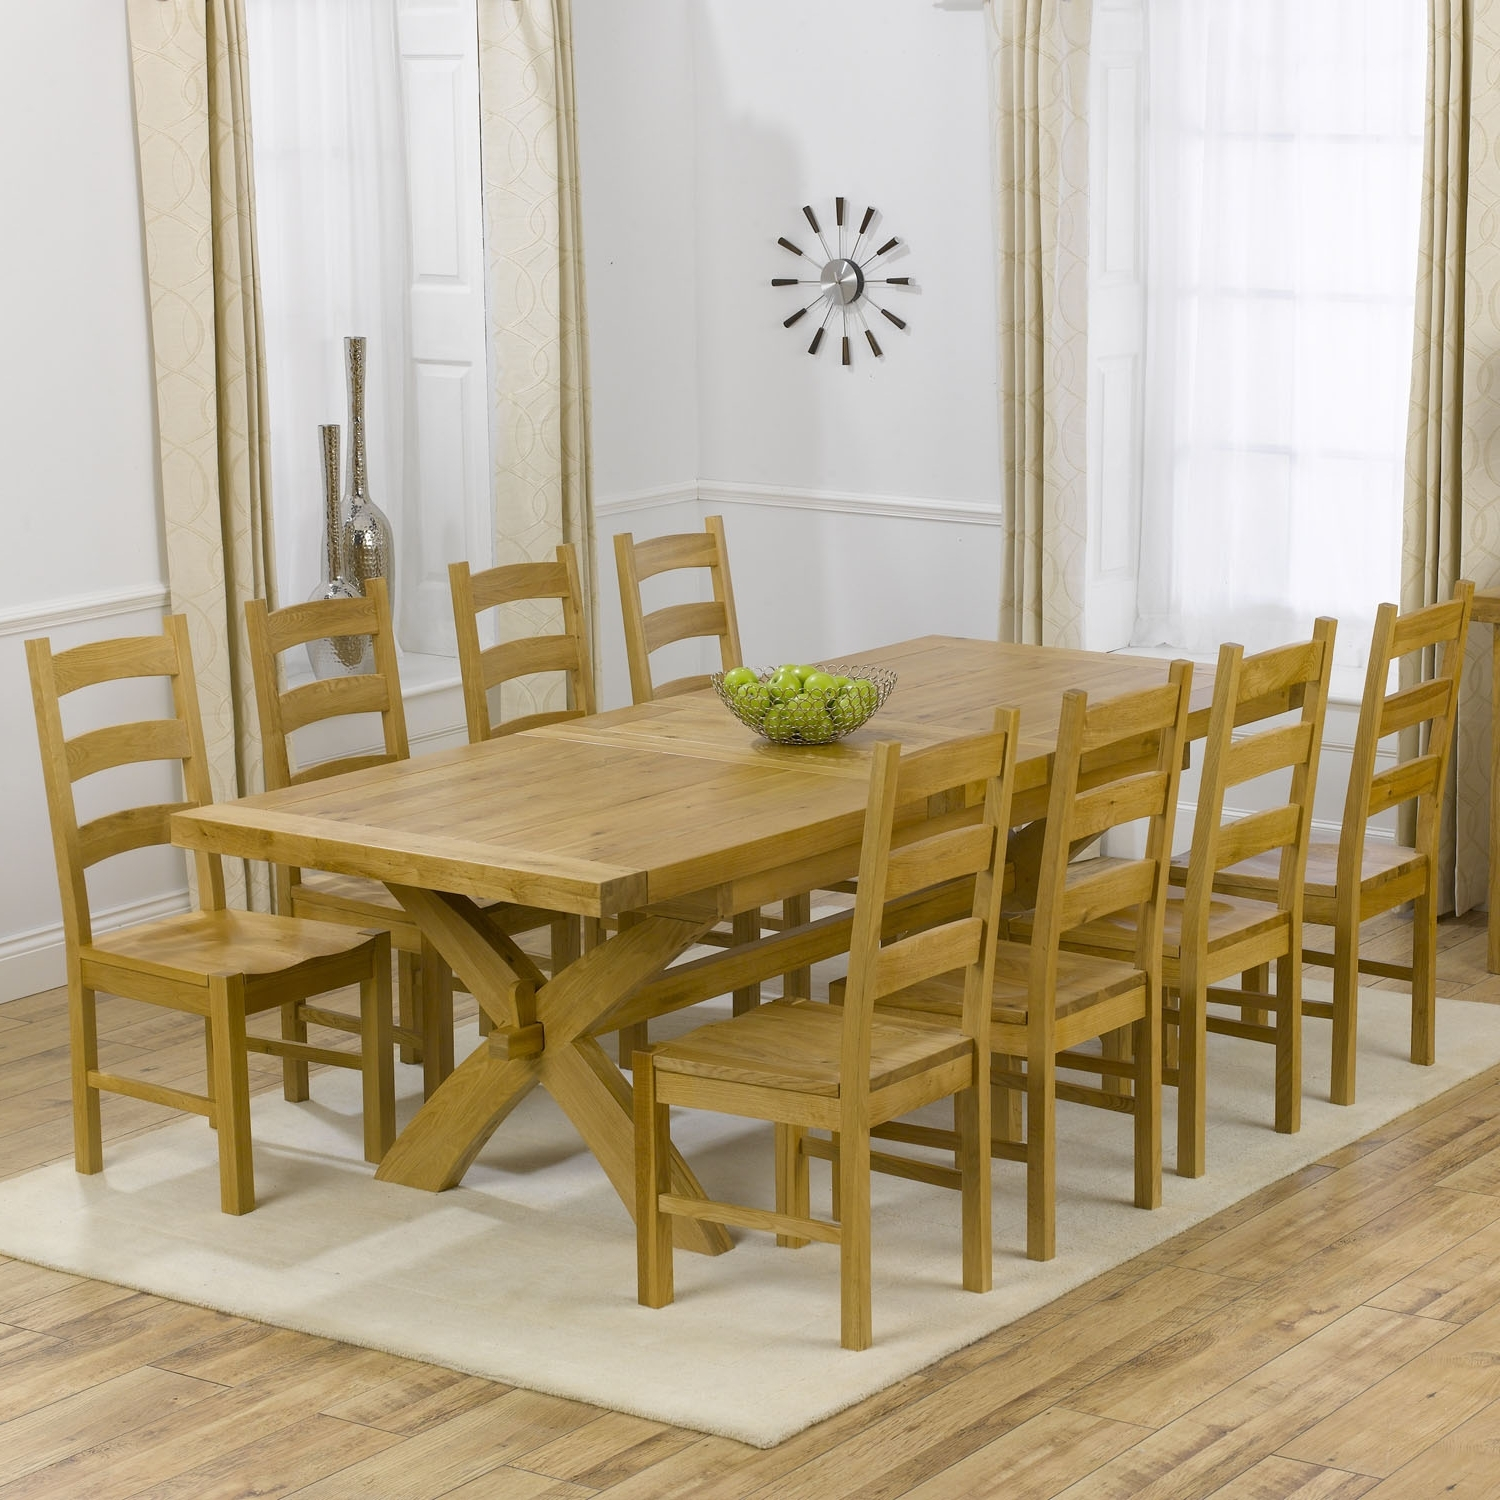 8 Seat Dining Tables For Latest Dining Tables (View 25 of 25)